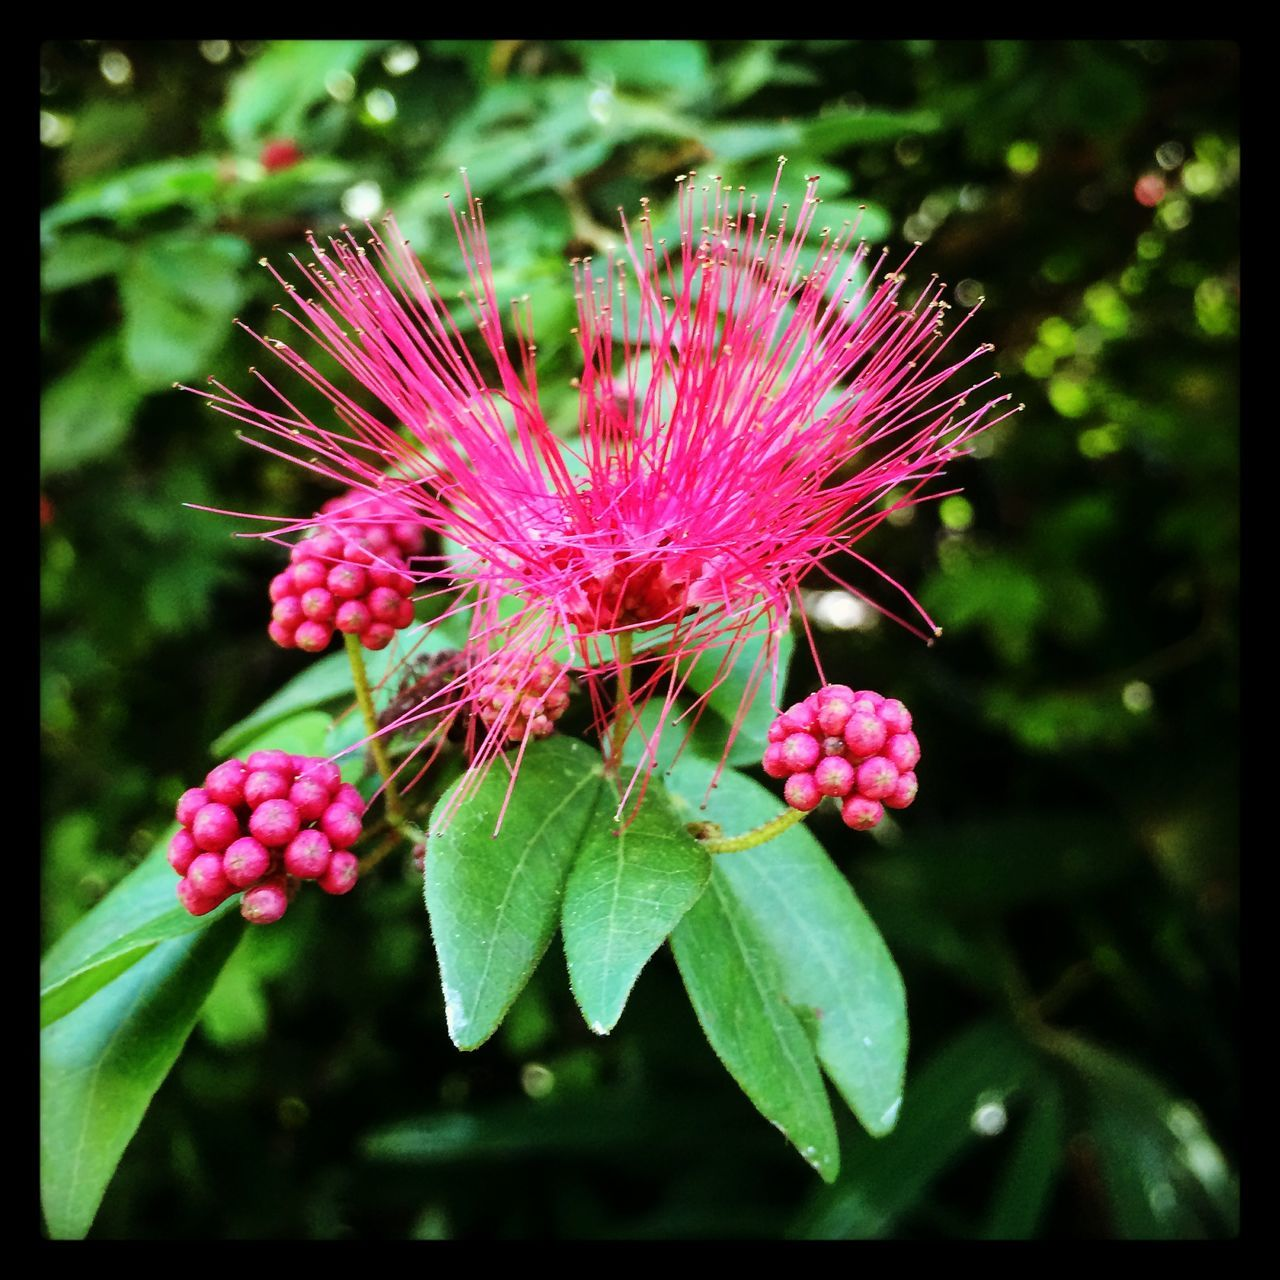 Pink Powder Puff Flora Florida Plants Pink Powder Puff Pink Nature Enjoying The Sights Paradise Taking Photos Nature's Diversities